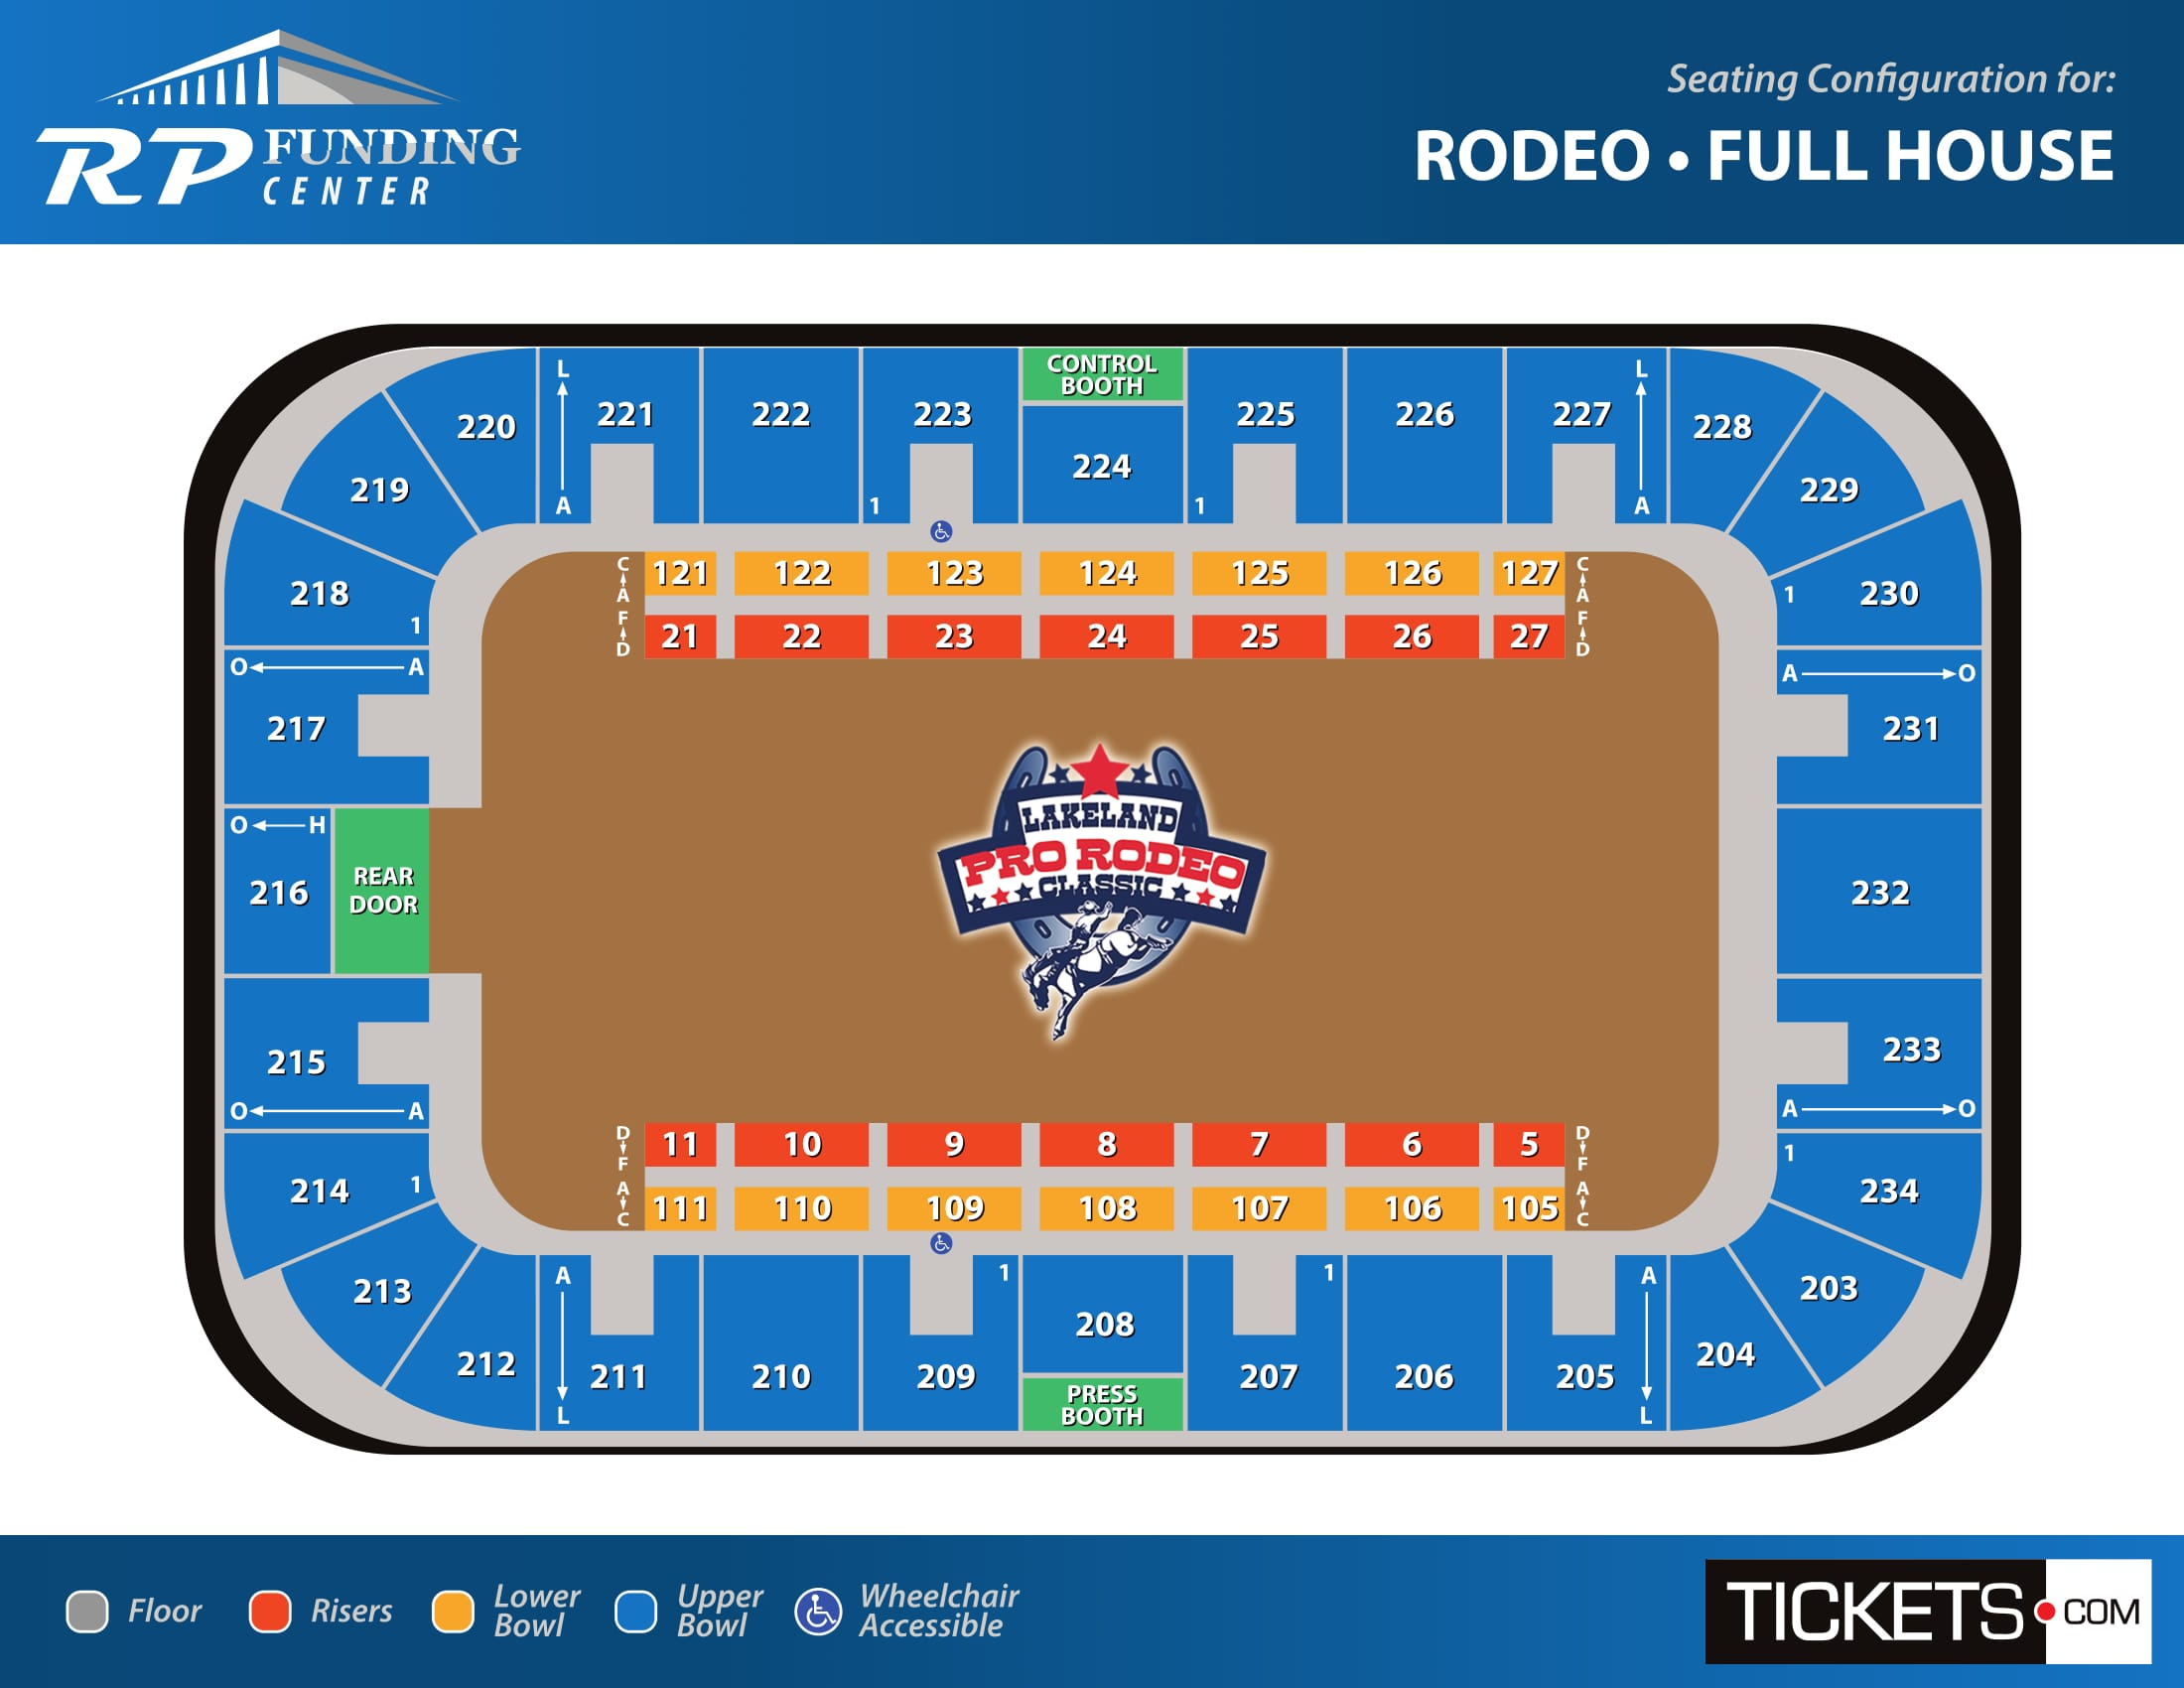 Rodeo - Full House seating map